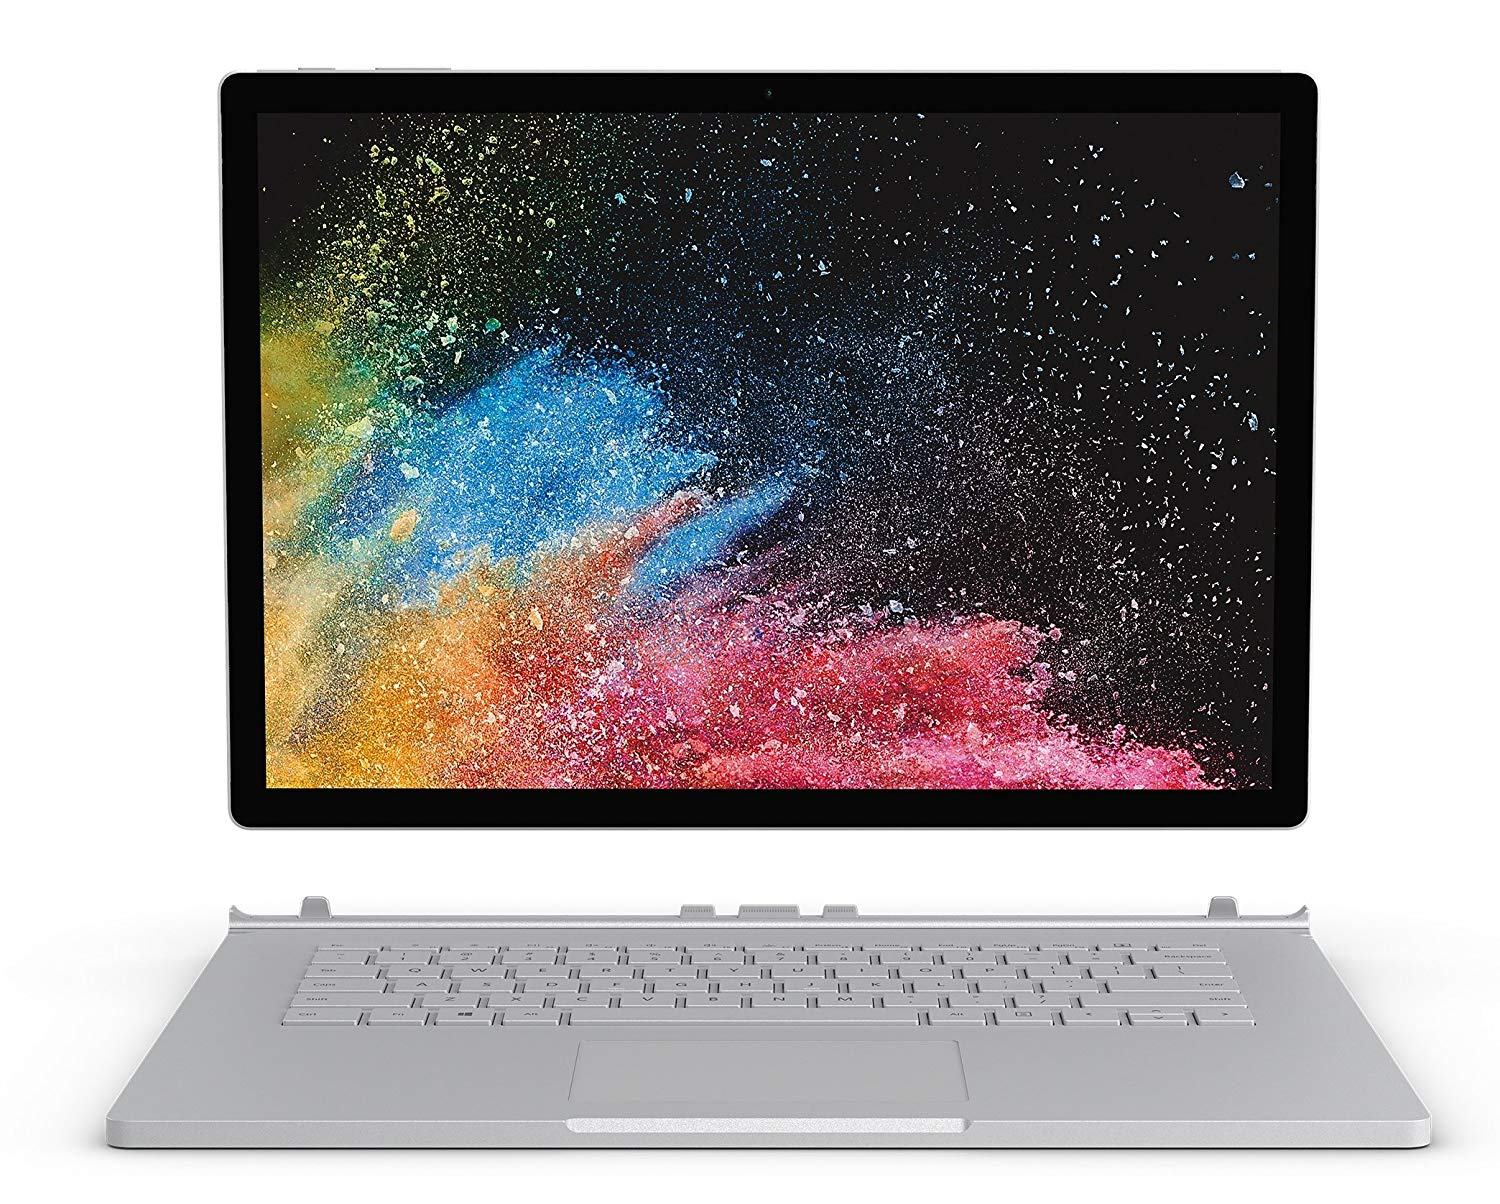 Microsoft Surface Book 2 1.90GHz i7-8650U